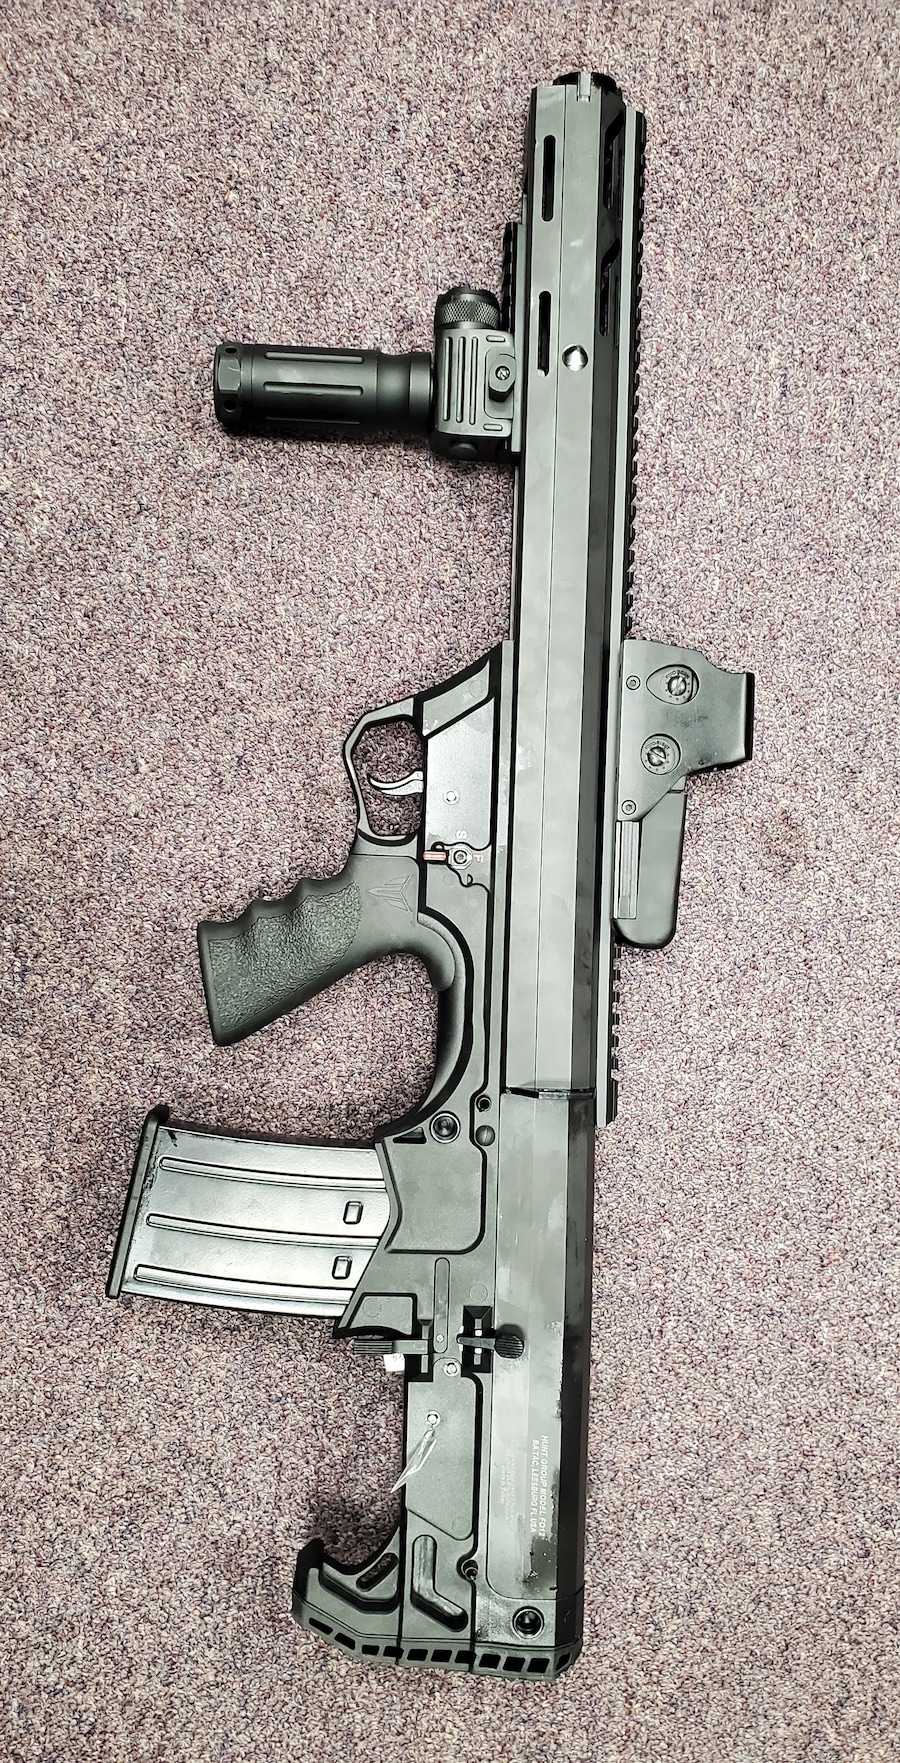 BLACK ACES TACTICAL fd12 with red dot sight and flashlight grip